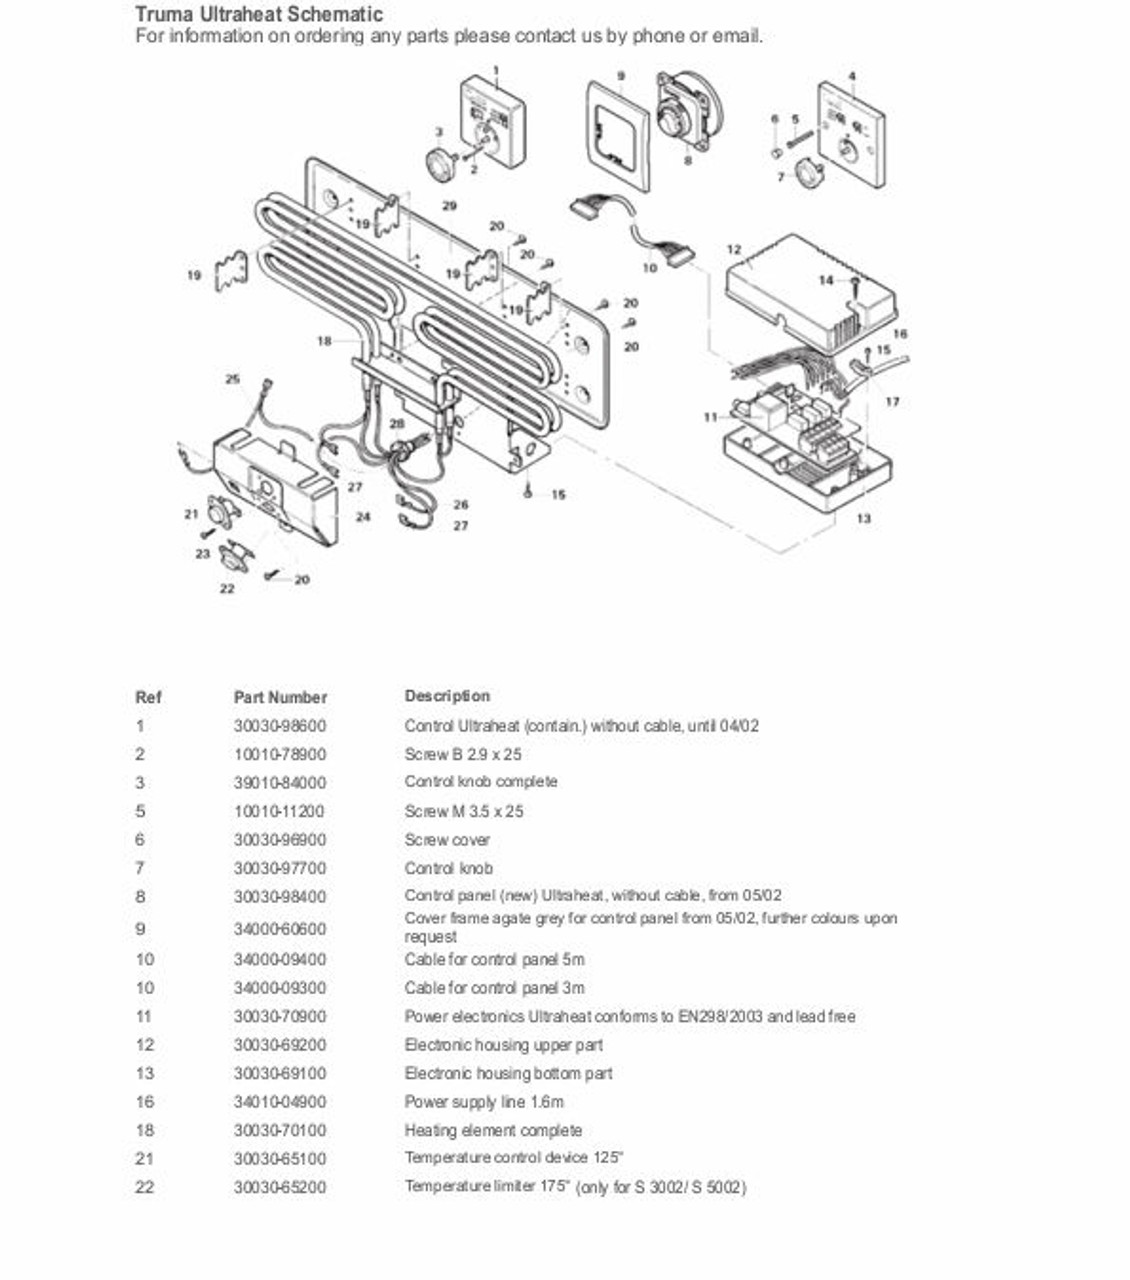 Exploded diagram for truma heating element 30030-70100